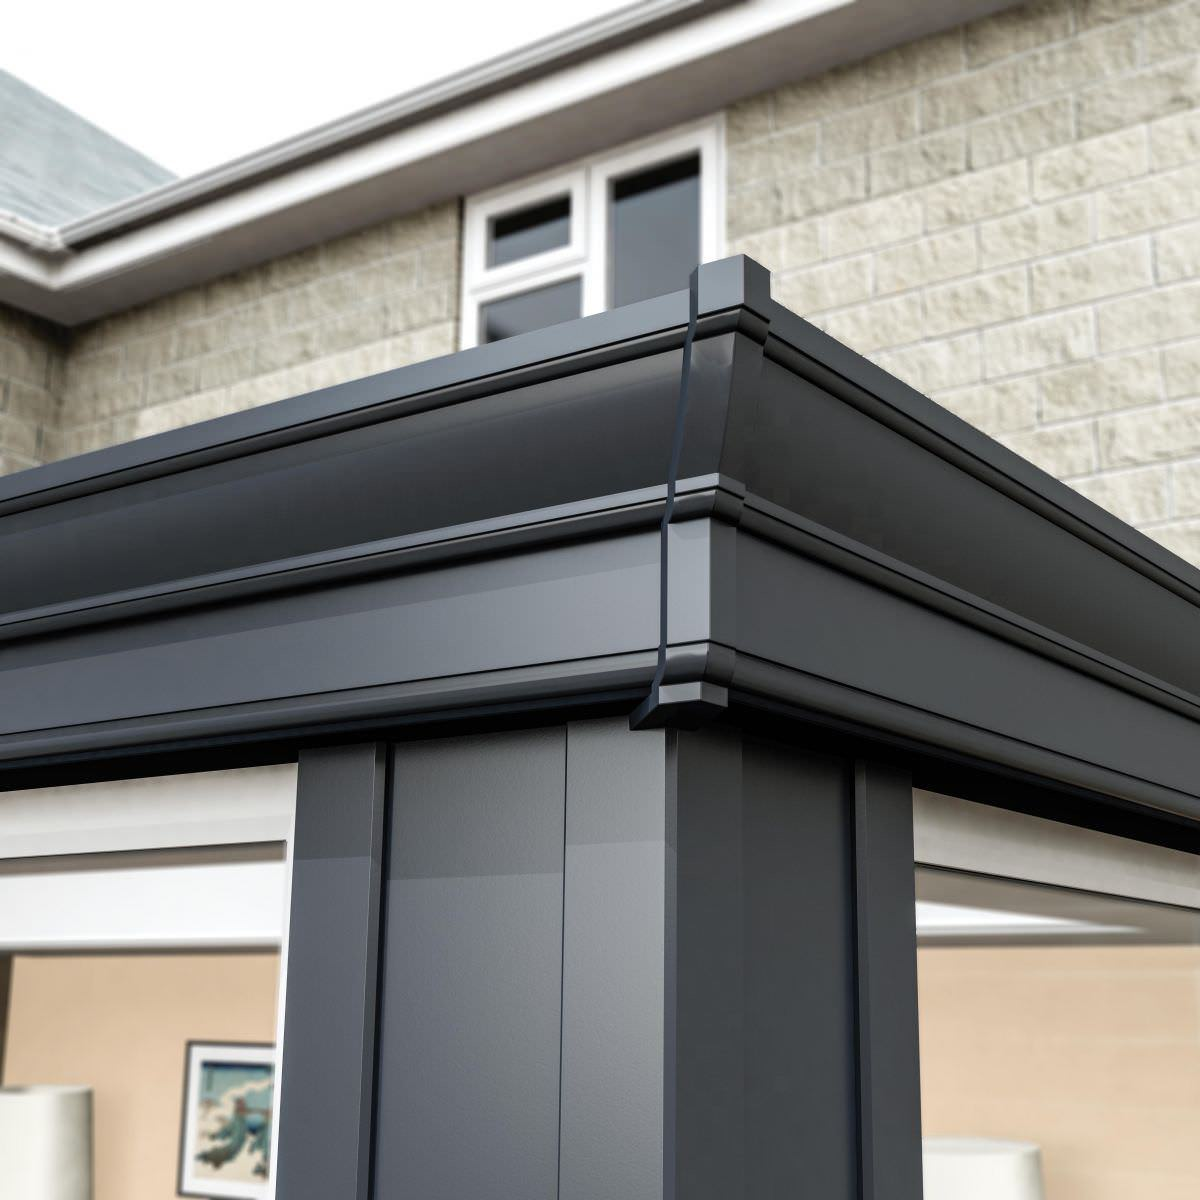 Ultraframe Trade Cornice